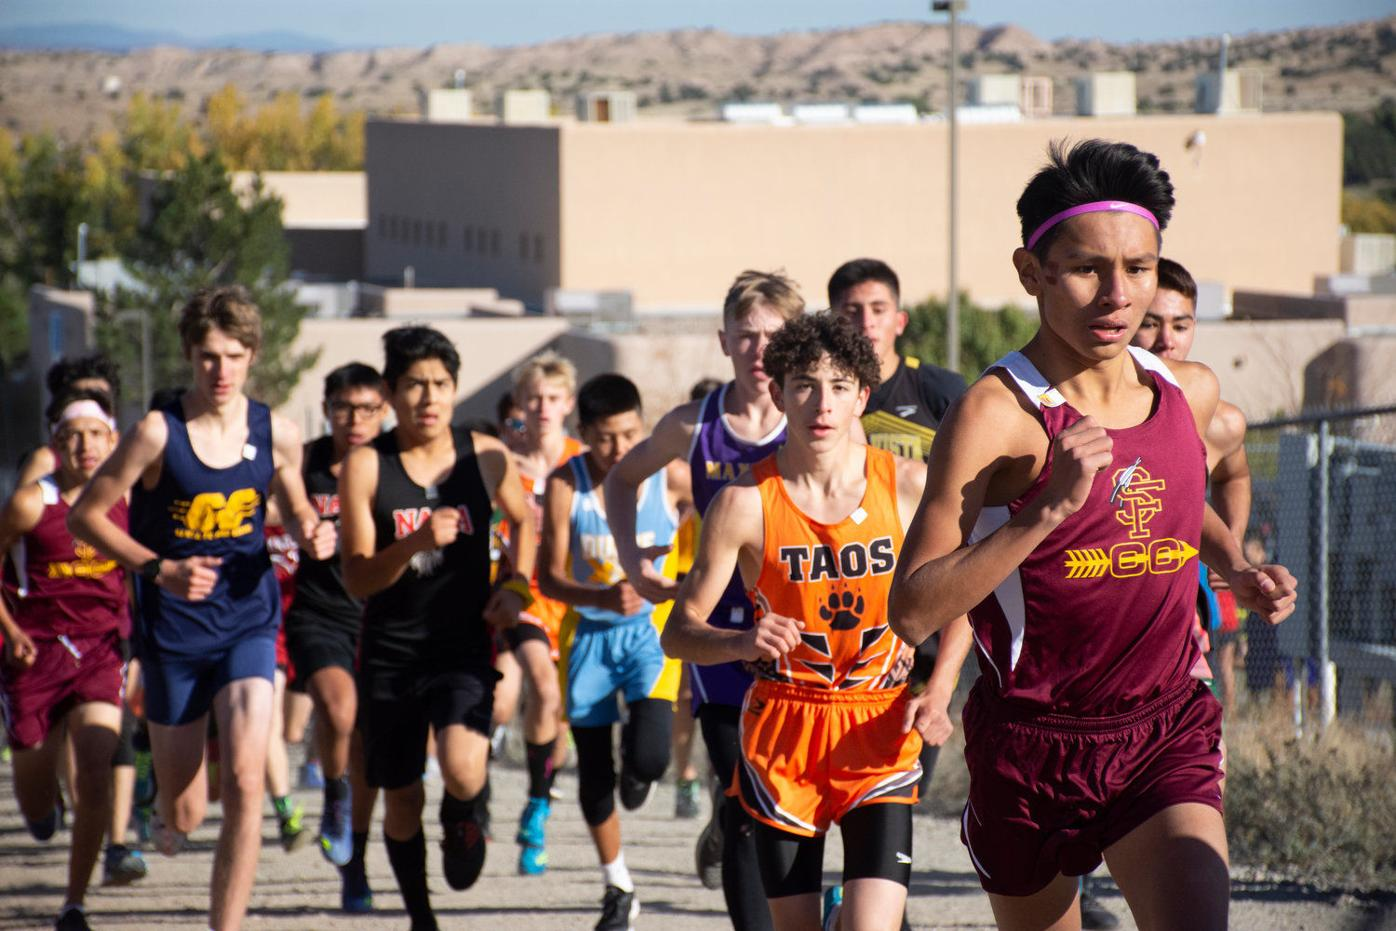 Taos came out strong, placed well in Northern New Mexico Challenge